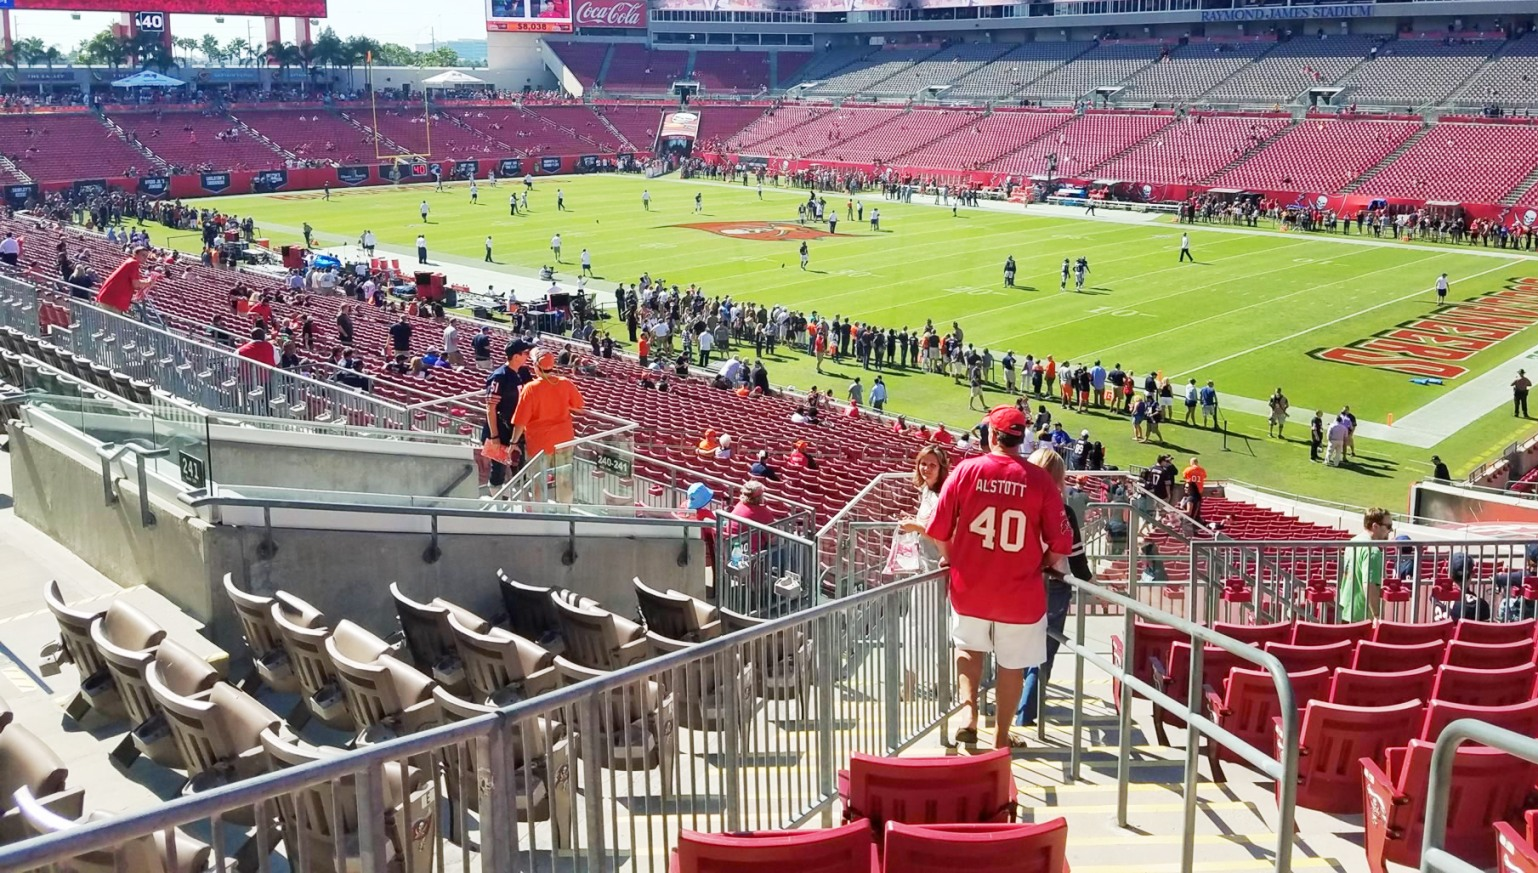 Raymond-James-Stadium-Section-241-Row-L-on-11-13-2016k.jpg